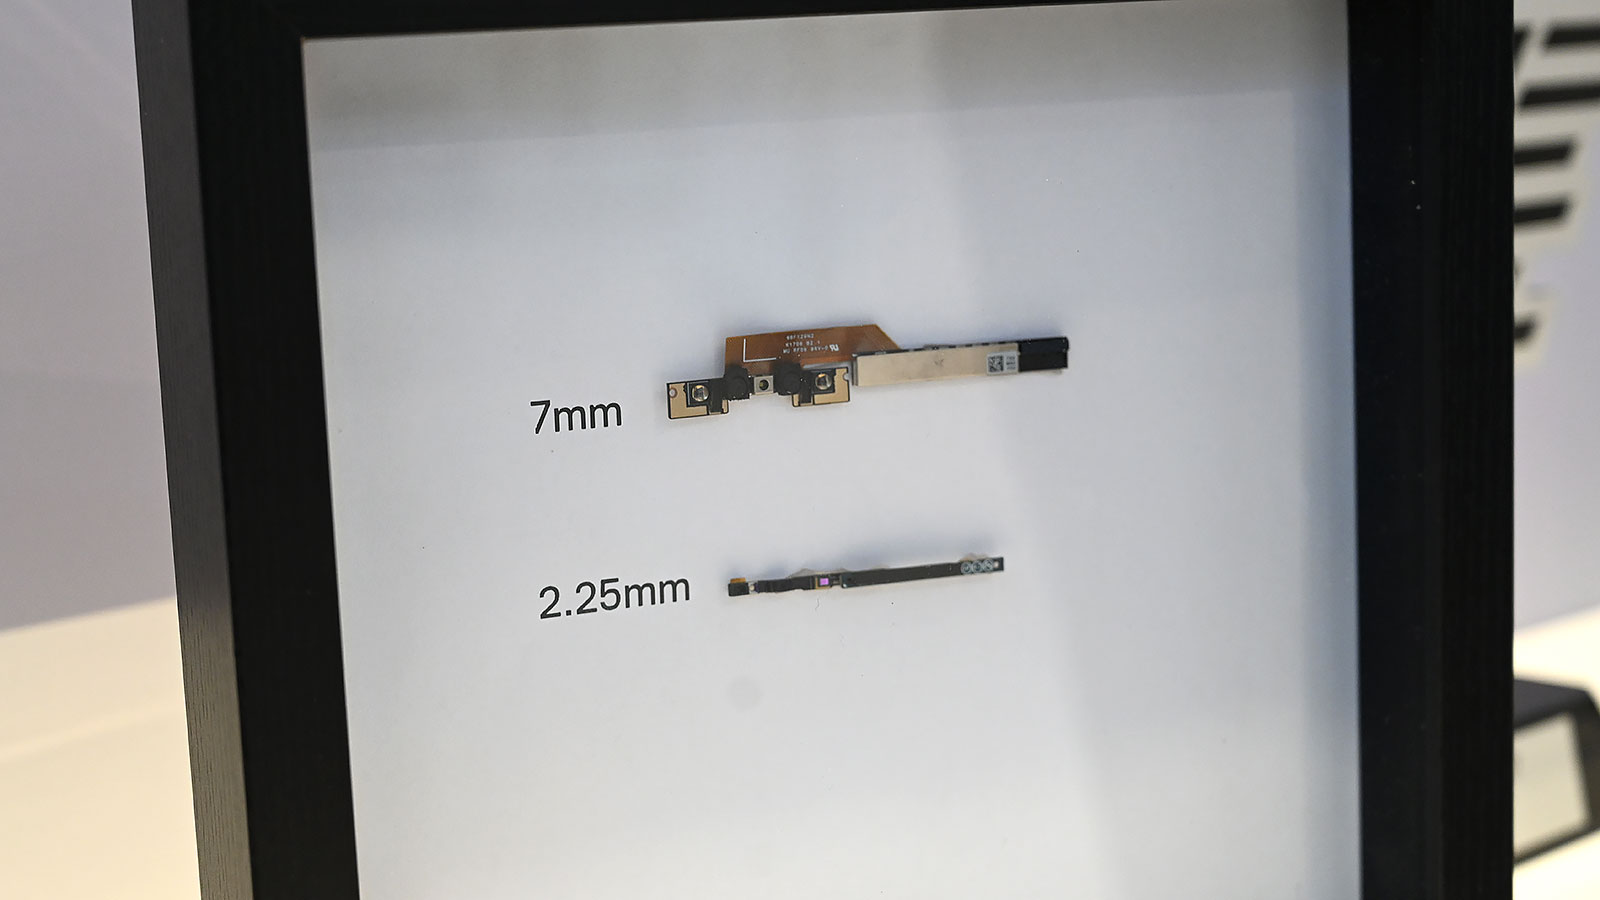 Here's a size comparison between the old XPS 13's chin webcam, and the new models micro HD webcam.